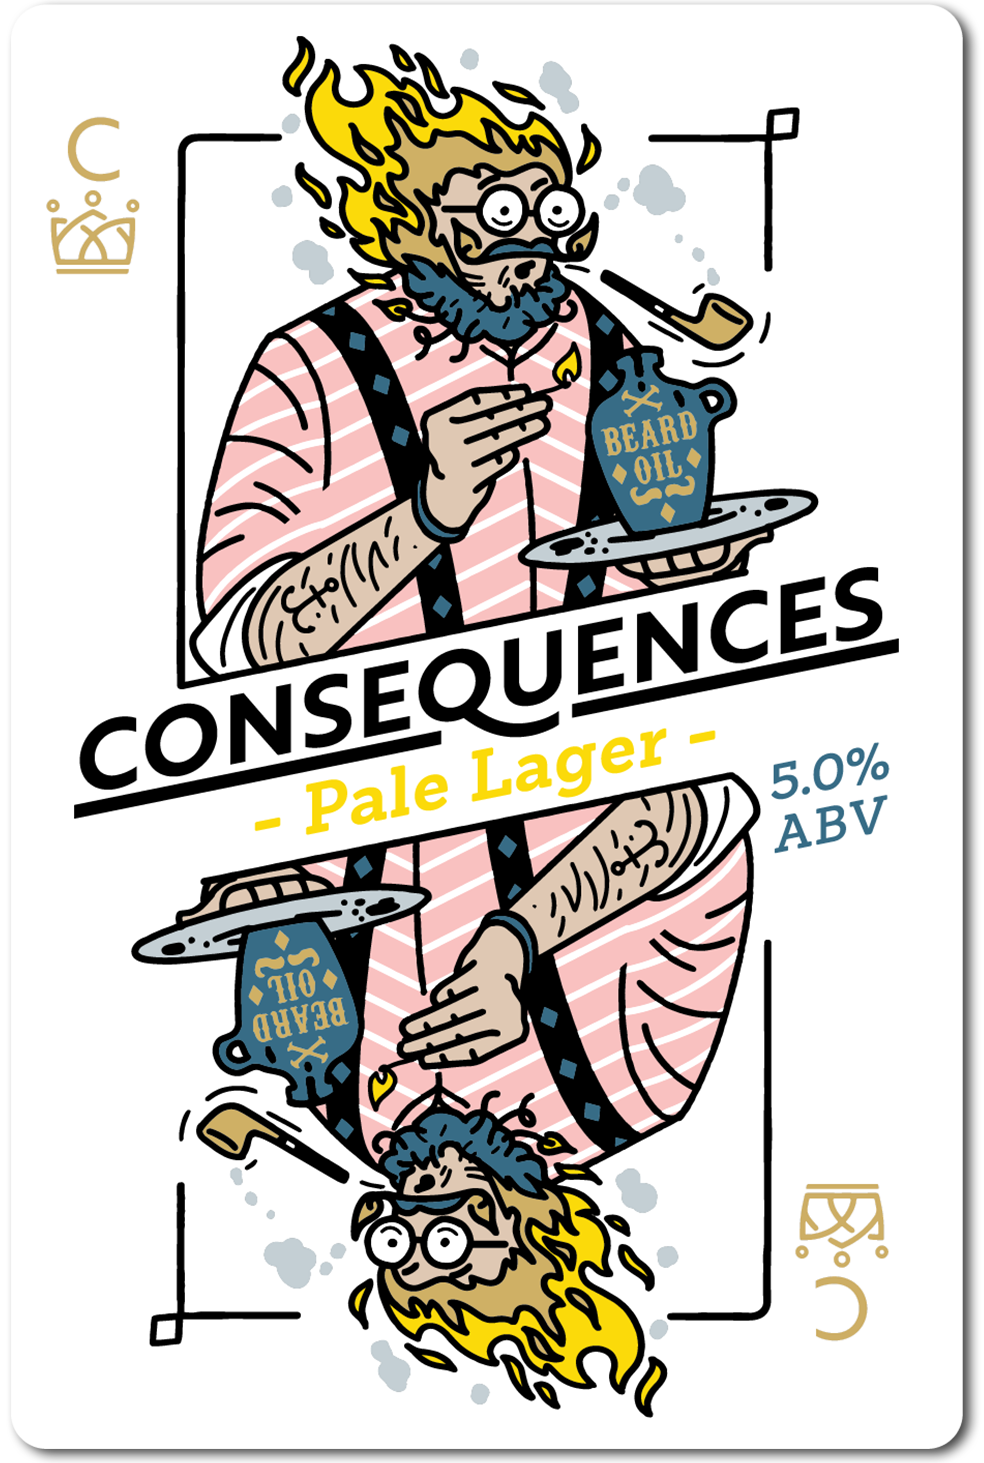 All in Brewing FWK  - Consequences - Pale Lager